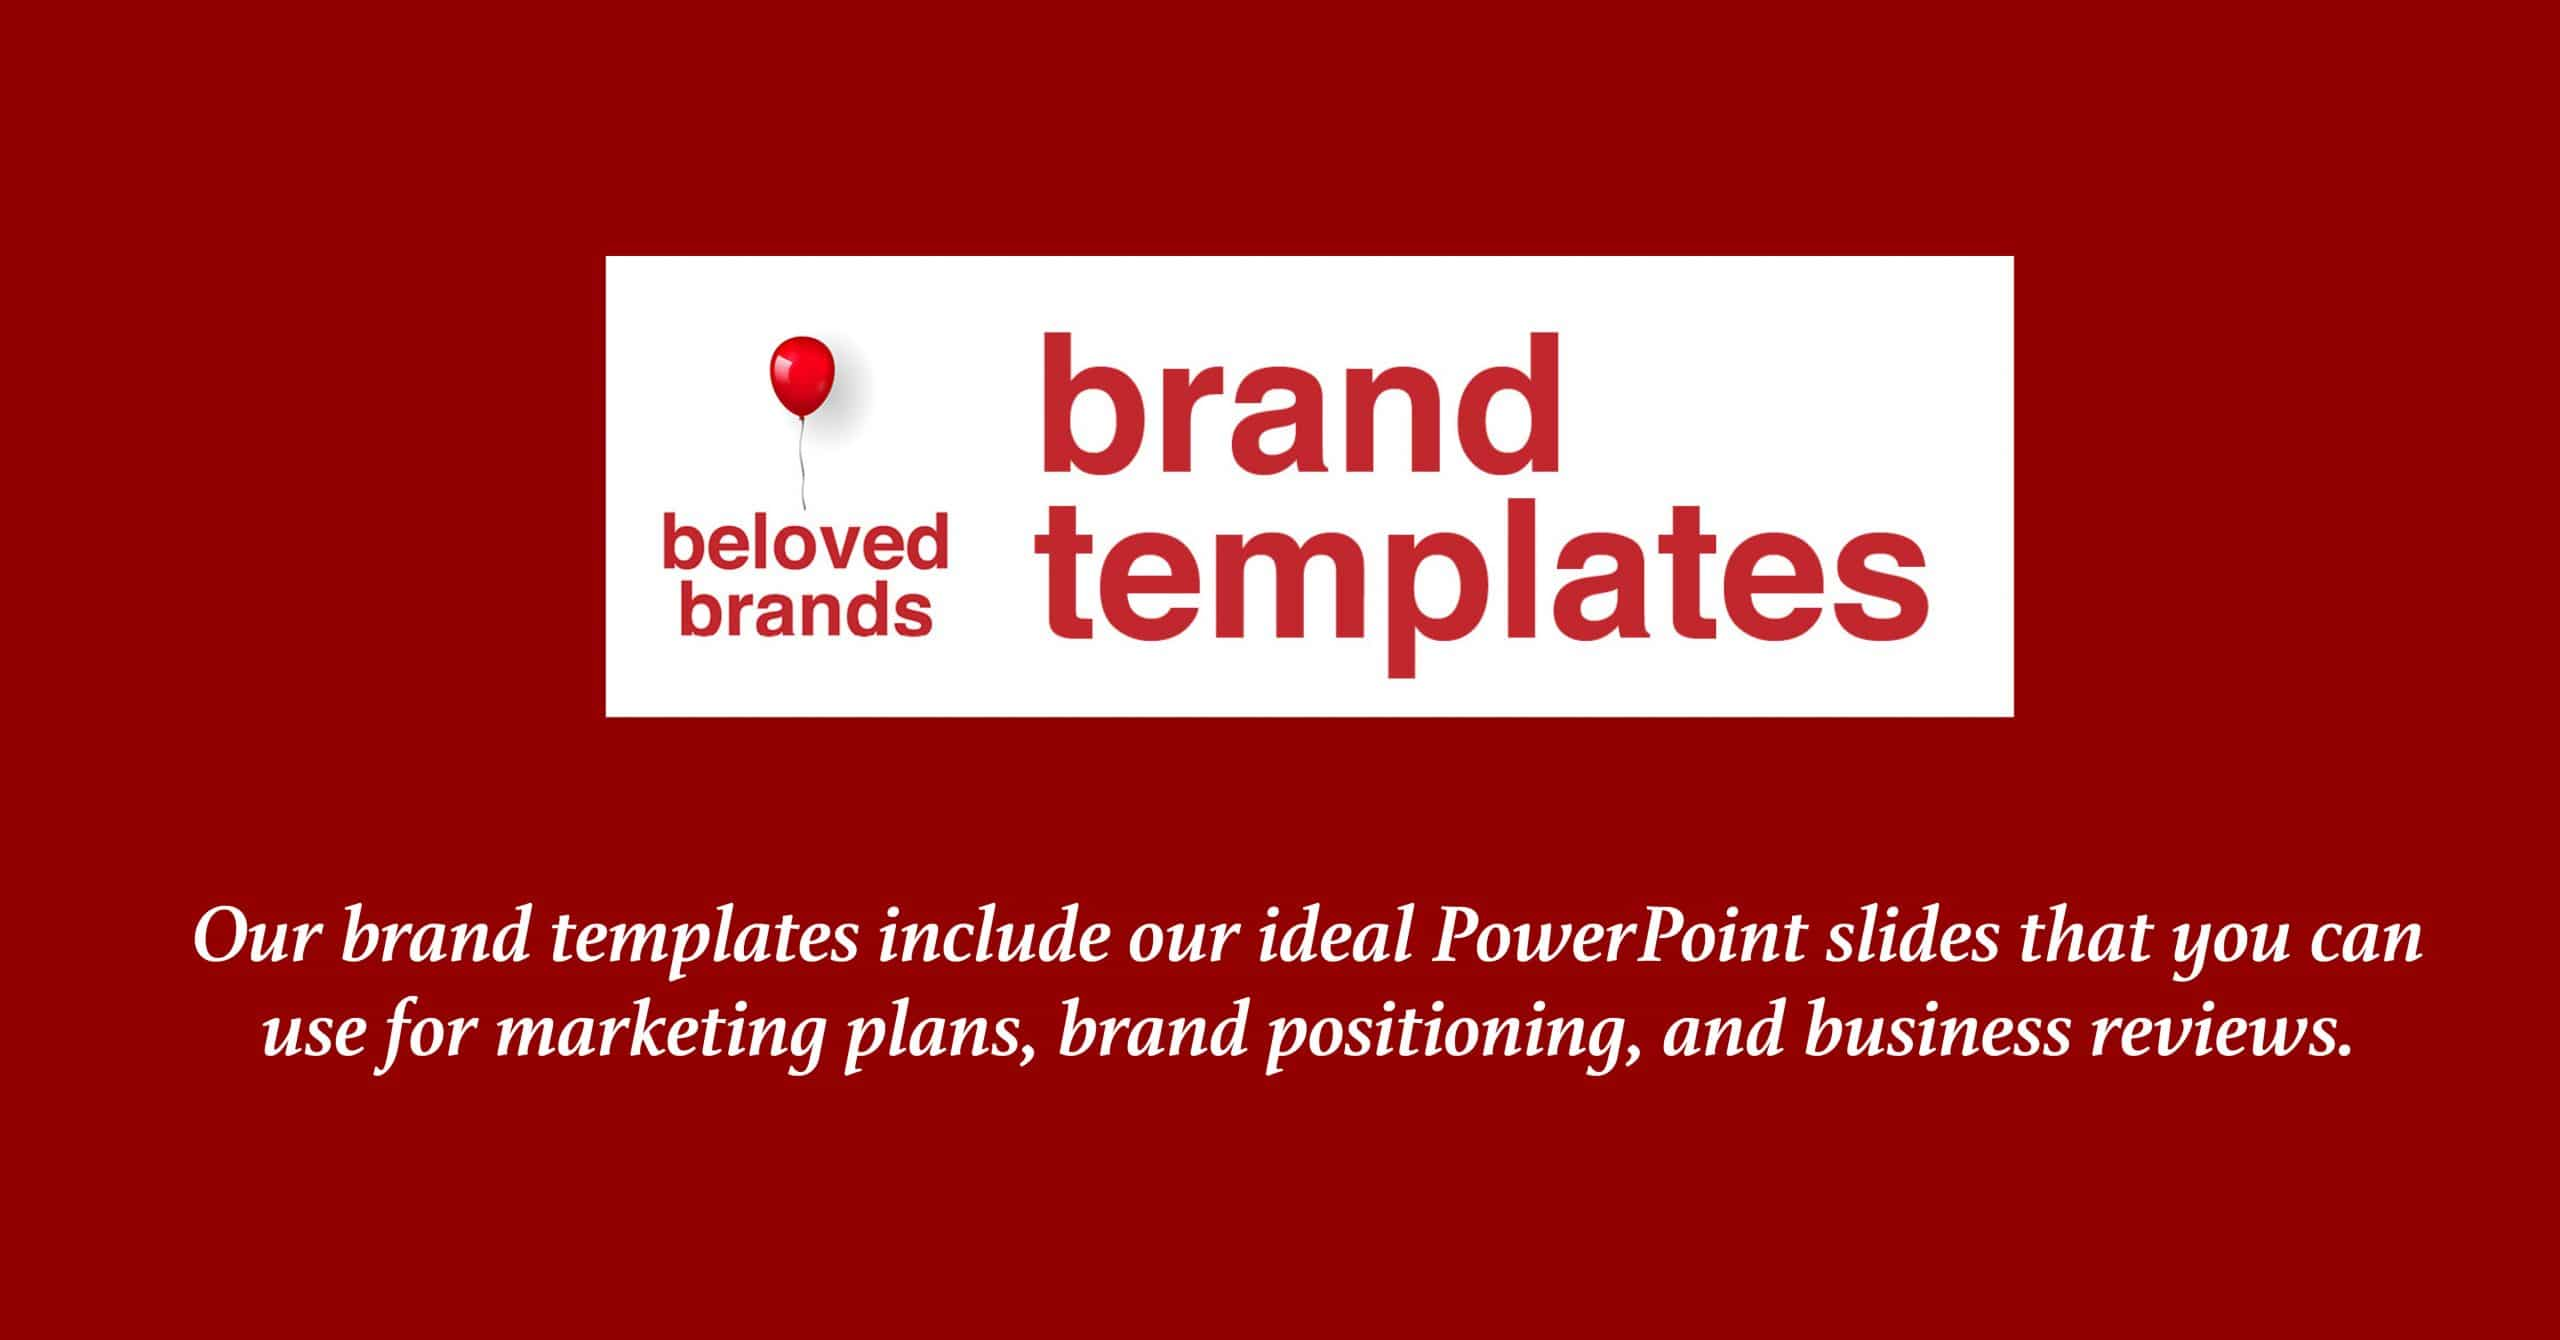 2021 logo red templates banner